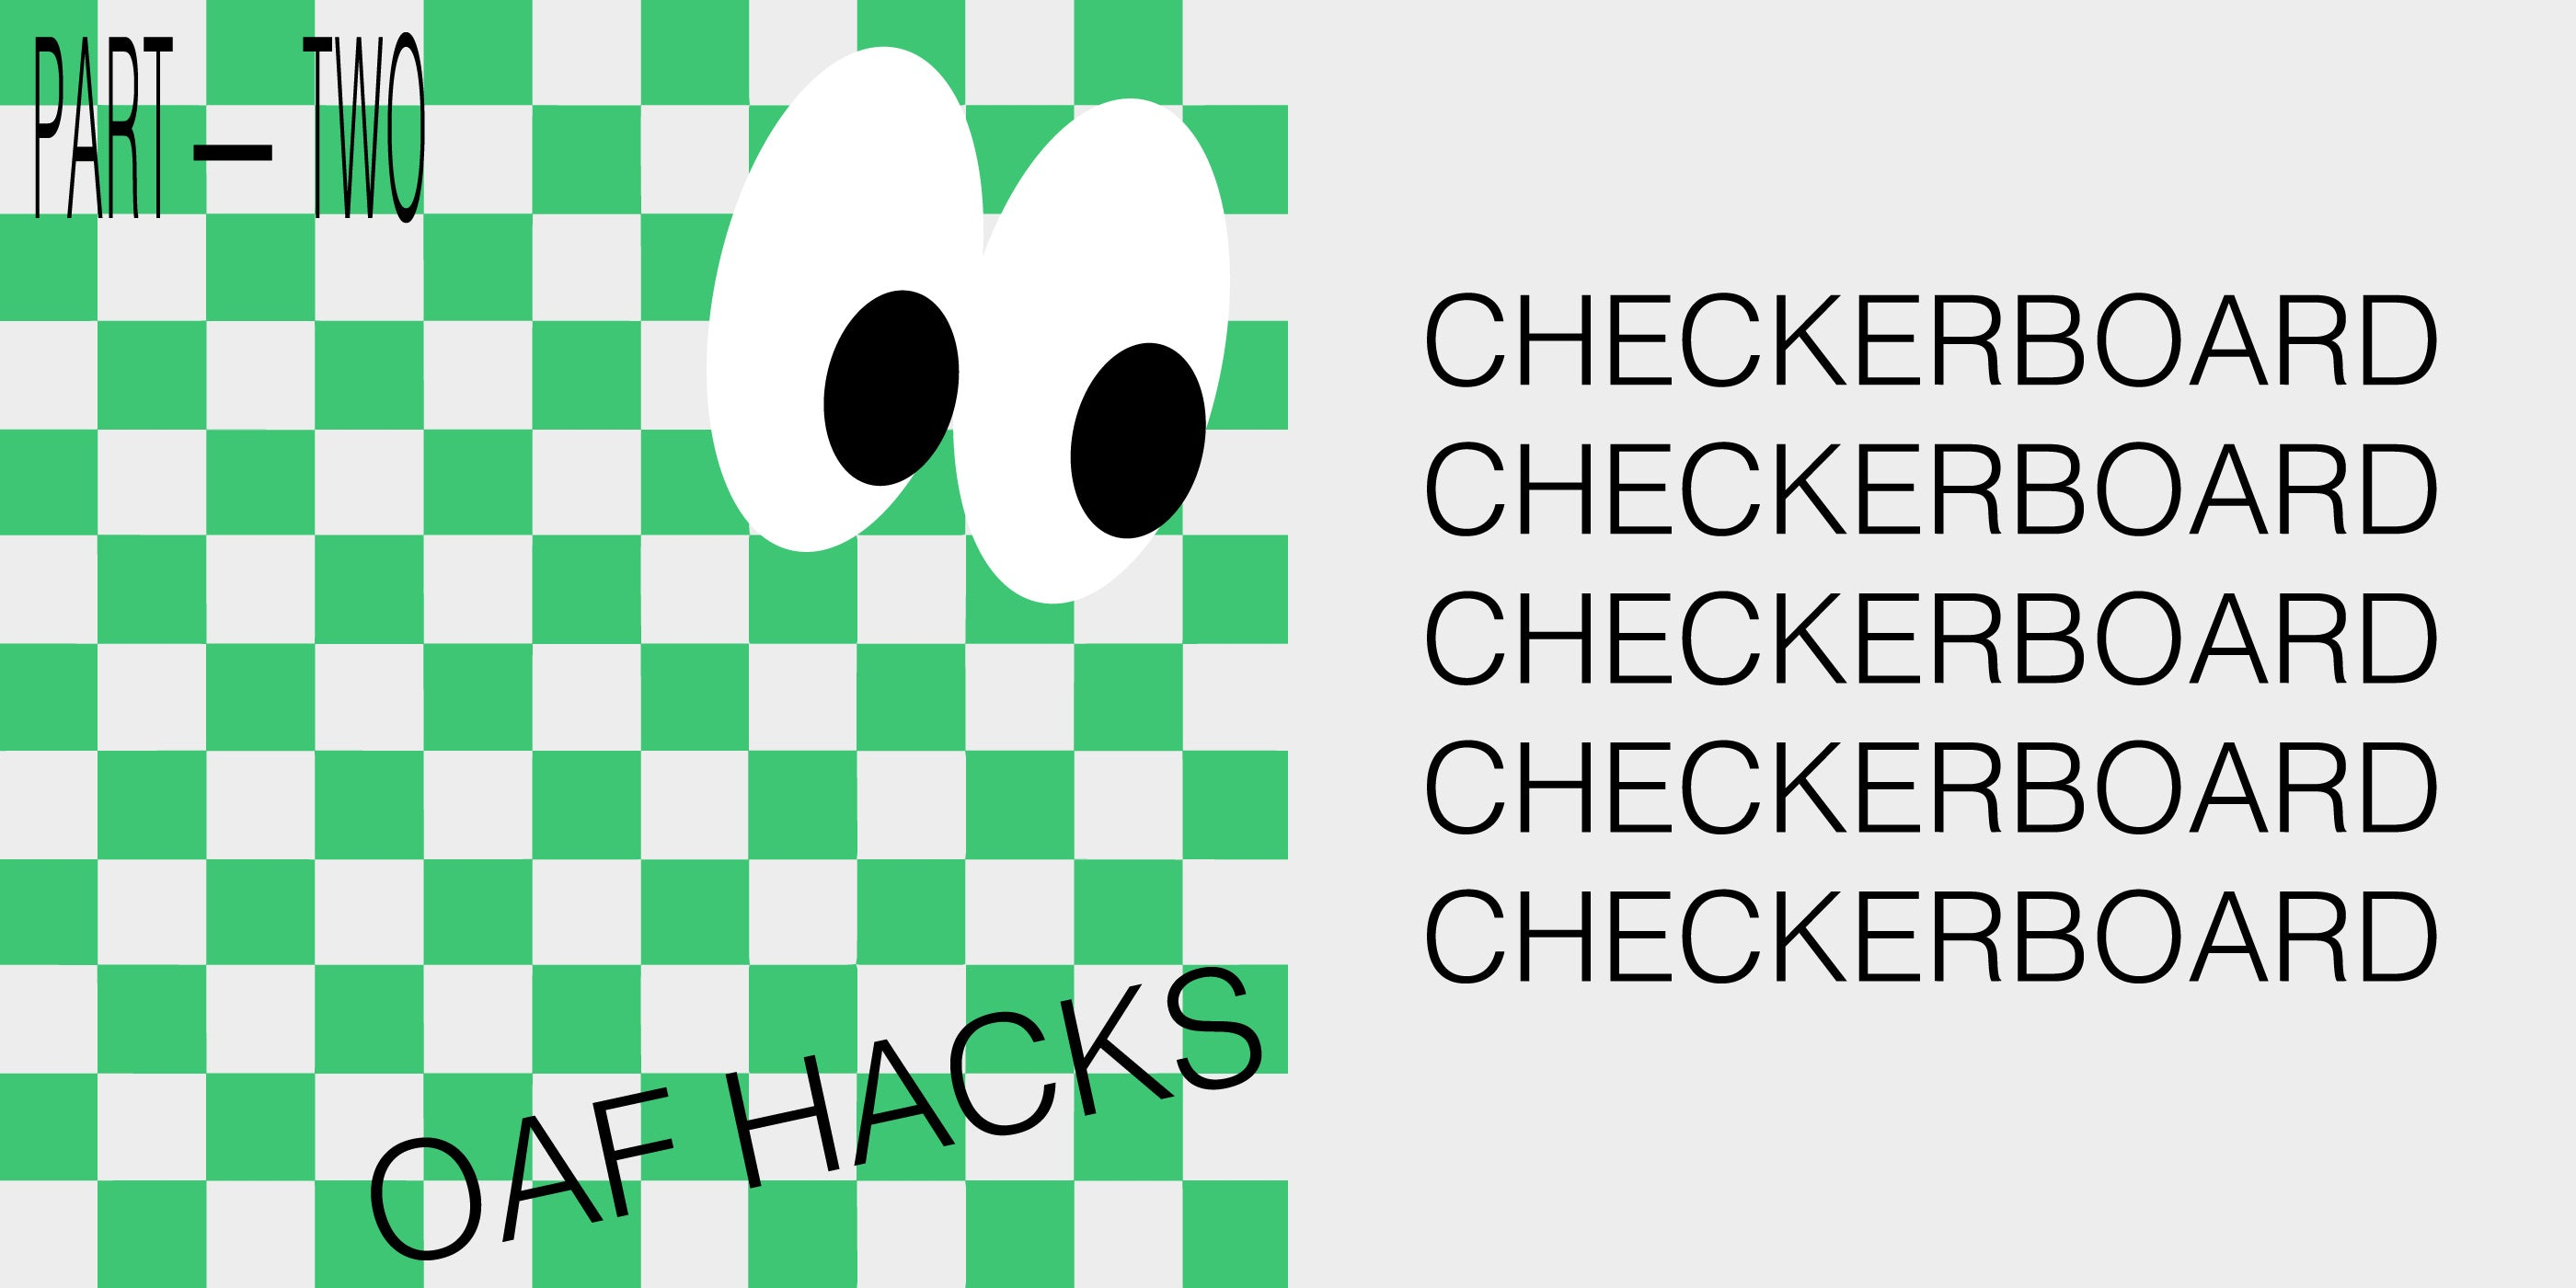 Oaf Hacks: Checkerboard